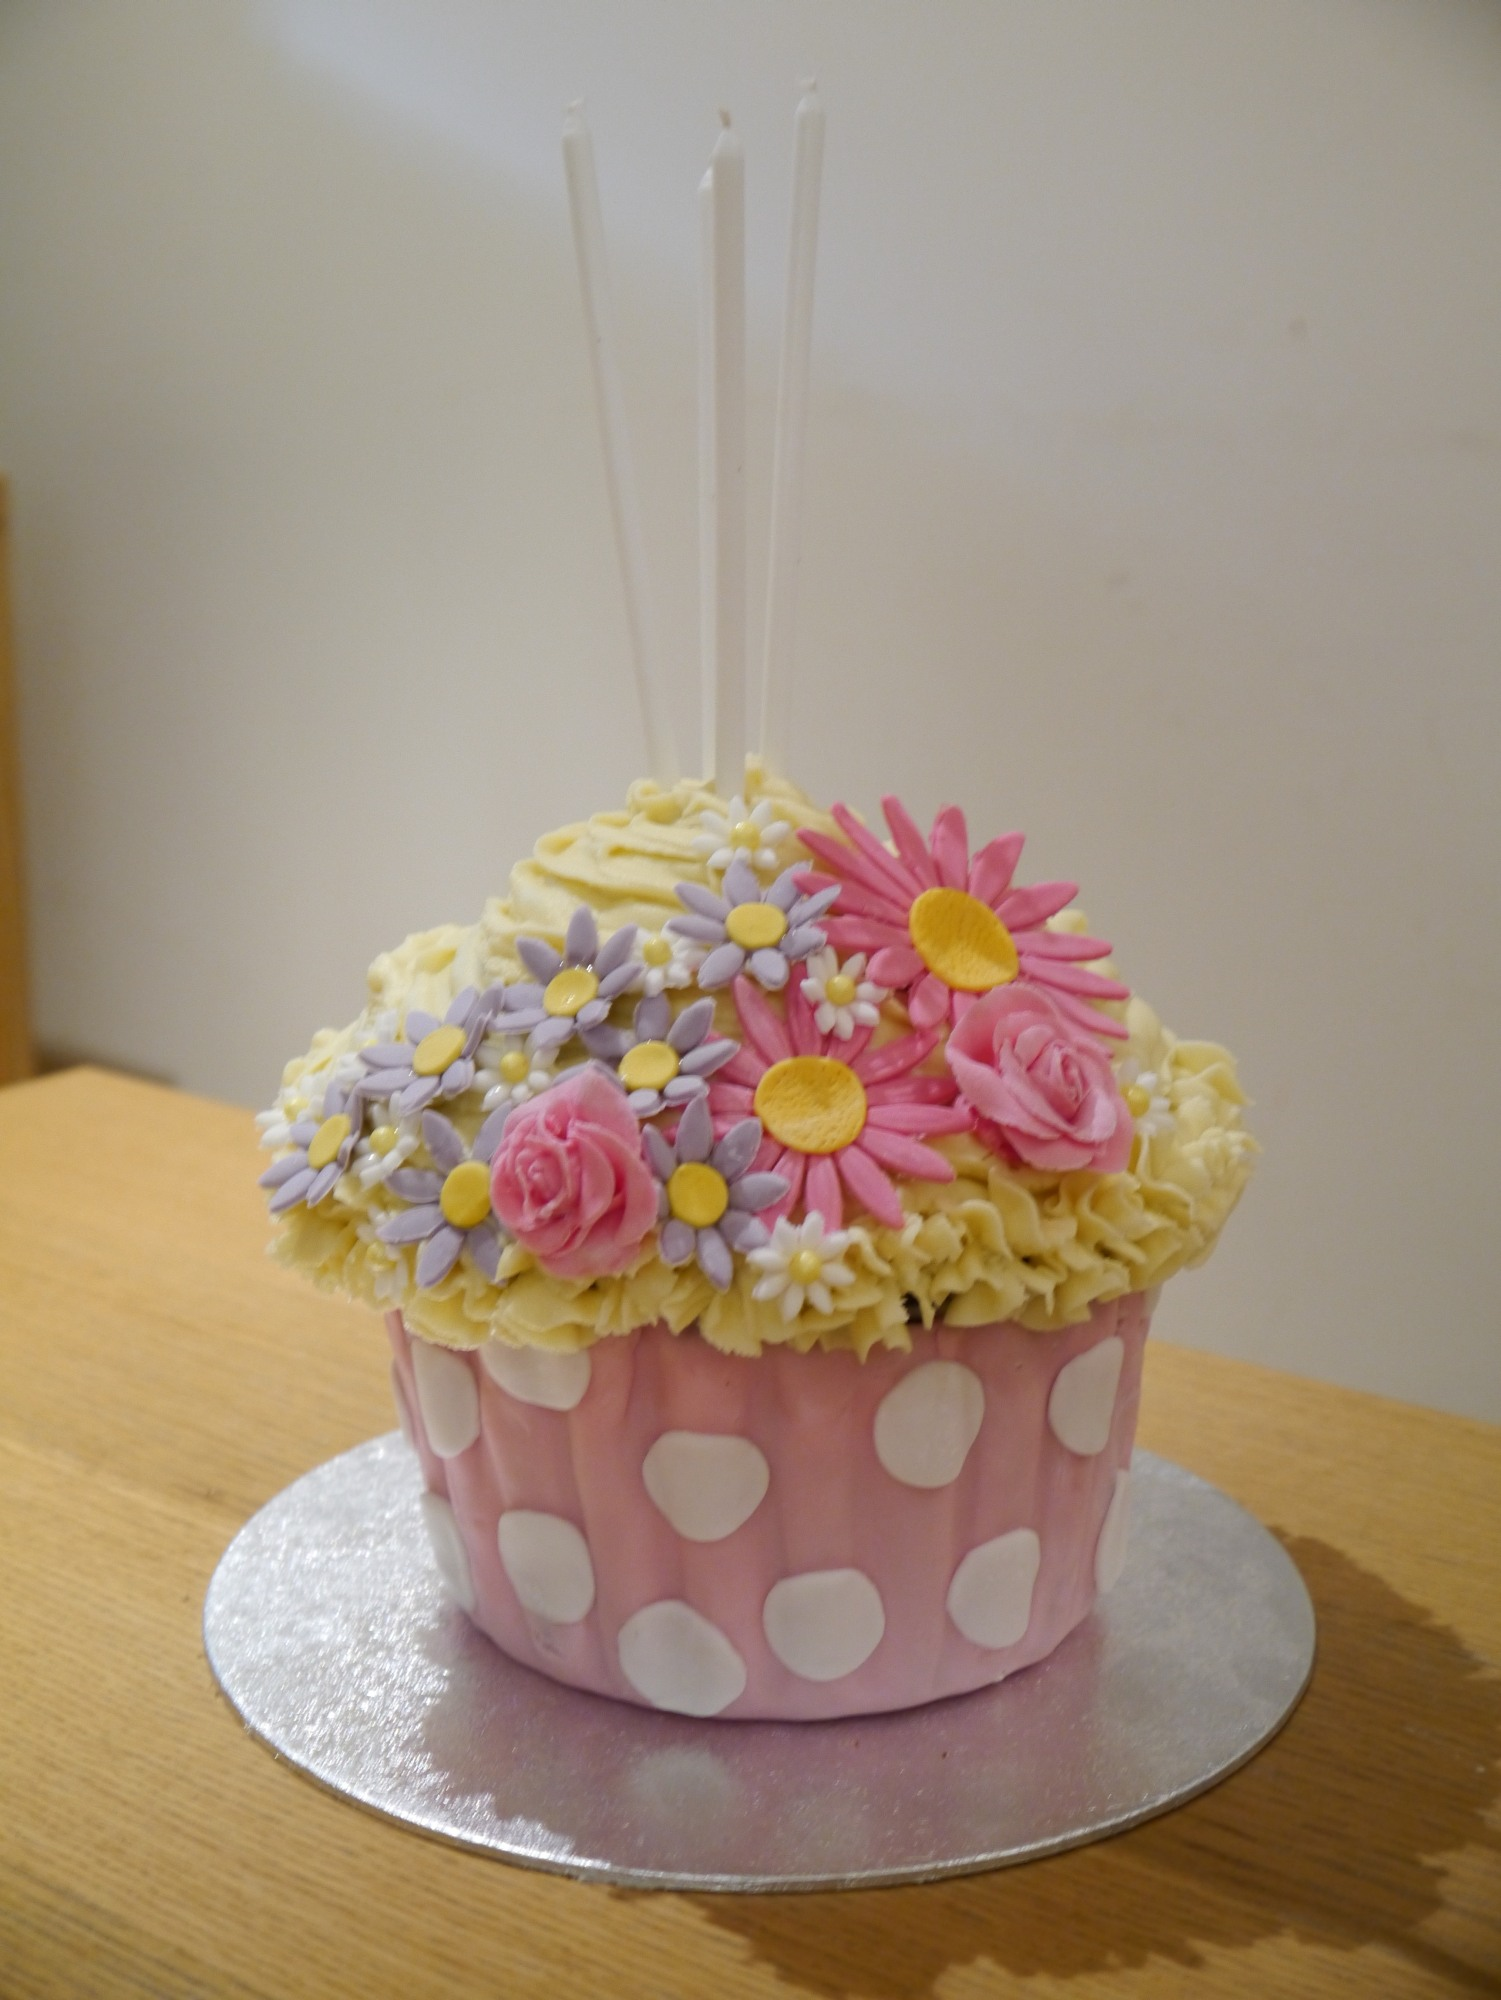 Happy Birthday To Me A Tutorial For A Giant Cupcake Cake Mummy